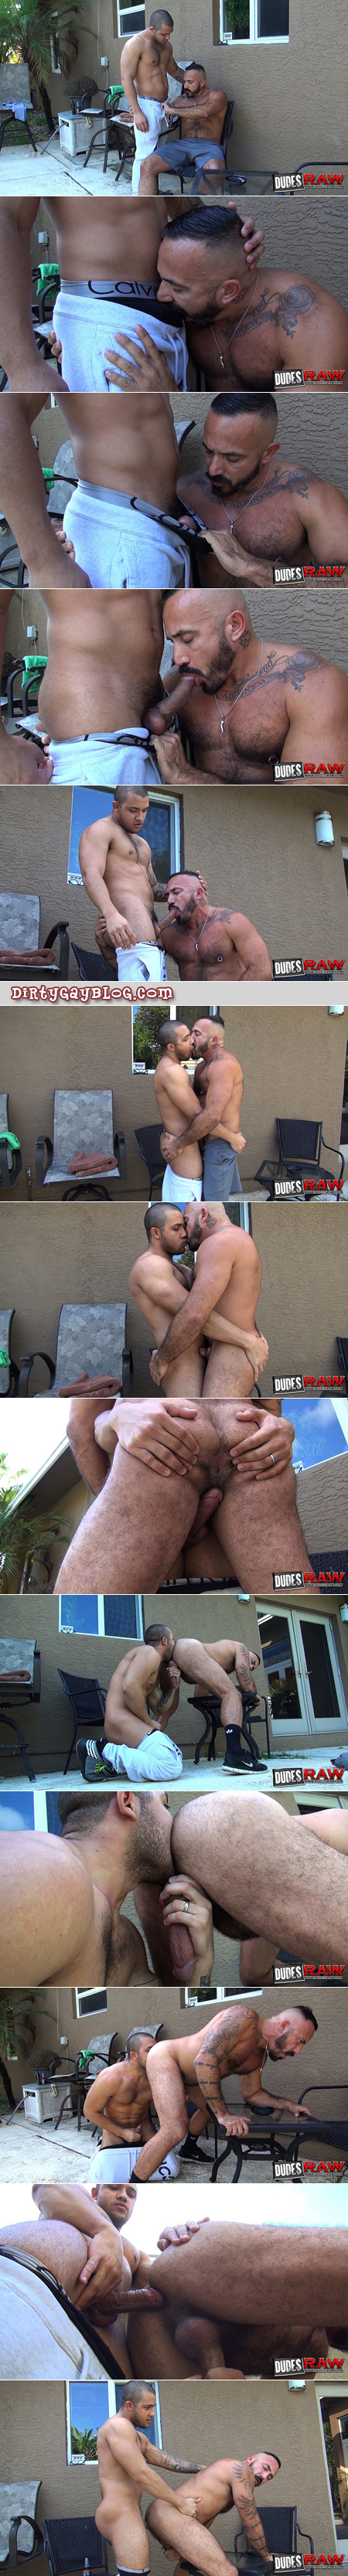 Hairy Latino Daddy being fucked bareback by a Latin muscle stud outside on the patio.